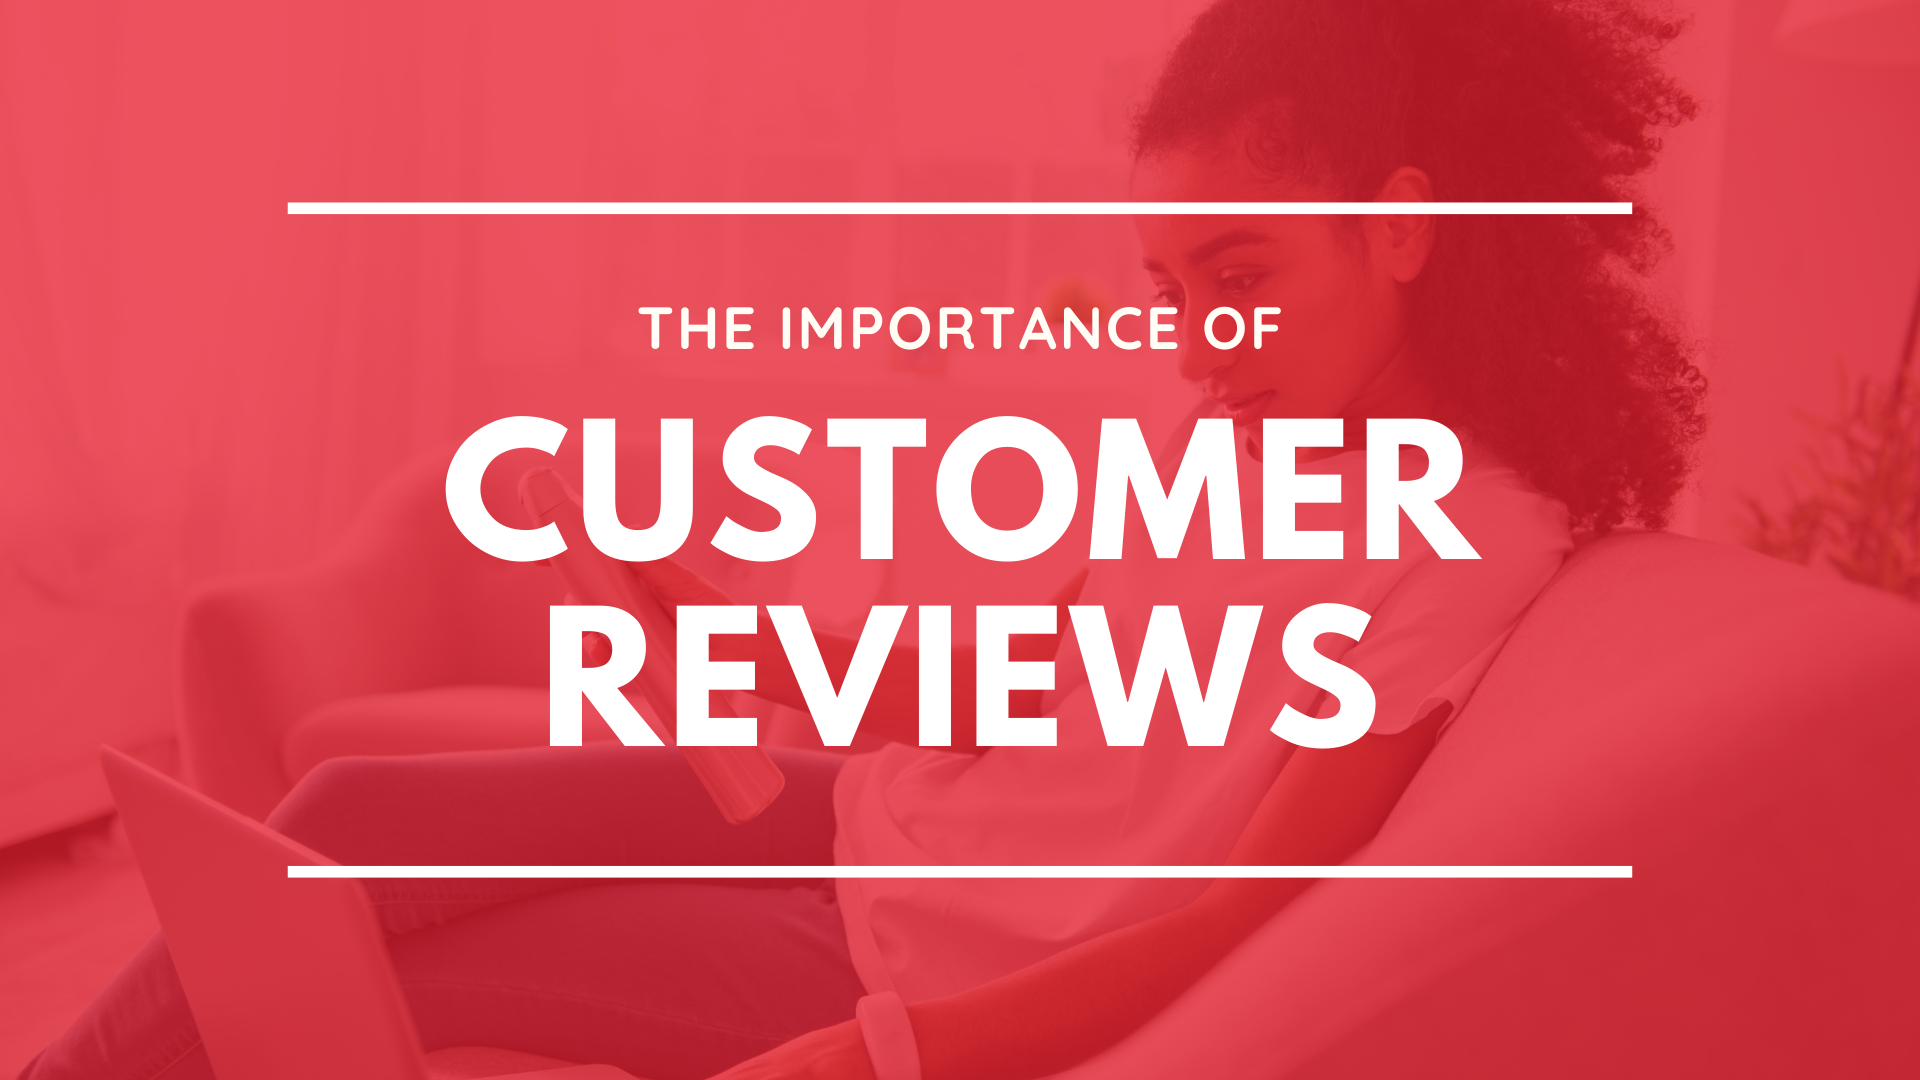 customer reviews, online reviews, ecommerce, ecommerce reviews, reviews, online store reviews, customer reviews 2021, 2021 online reviews, 2021 reviews, business reviews, website reviews, website reviews 2021